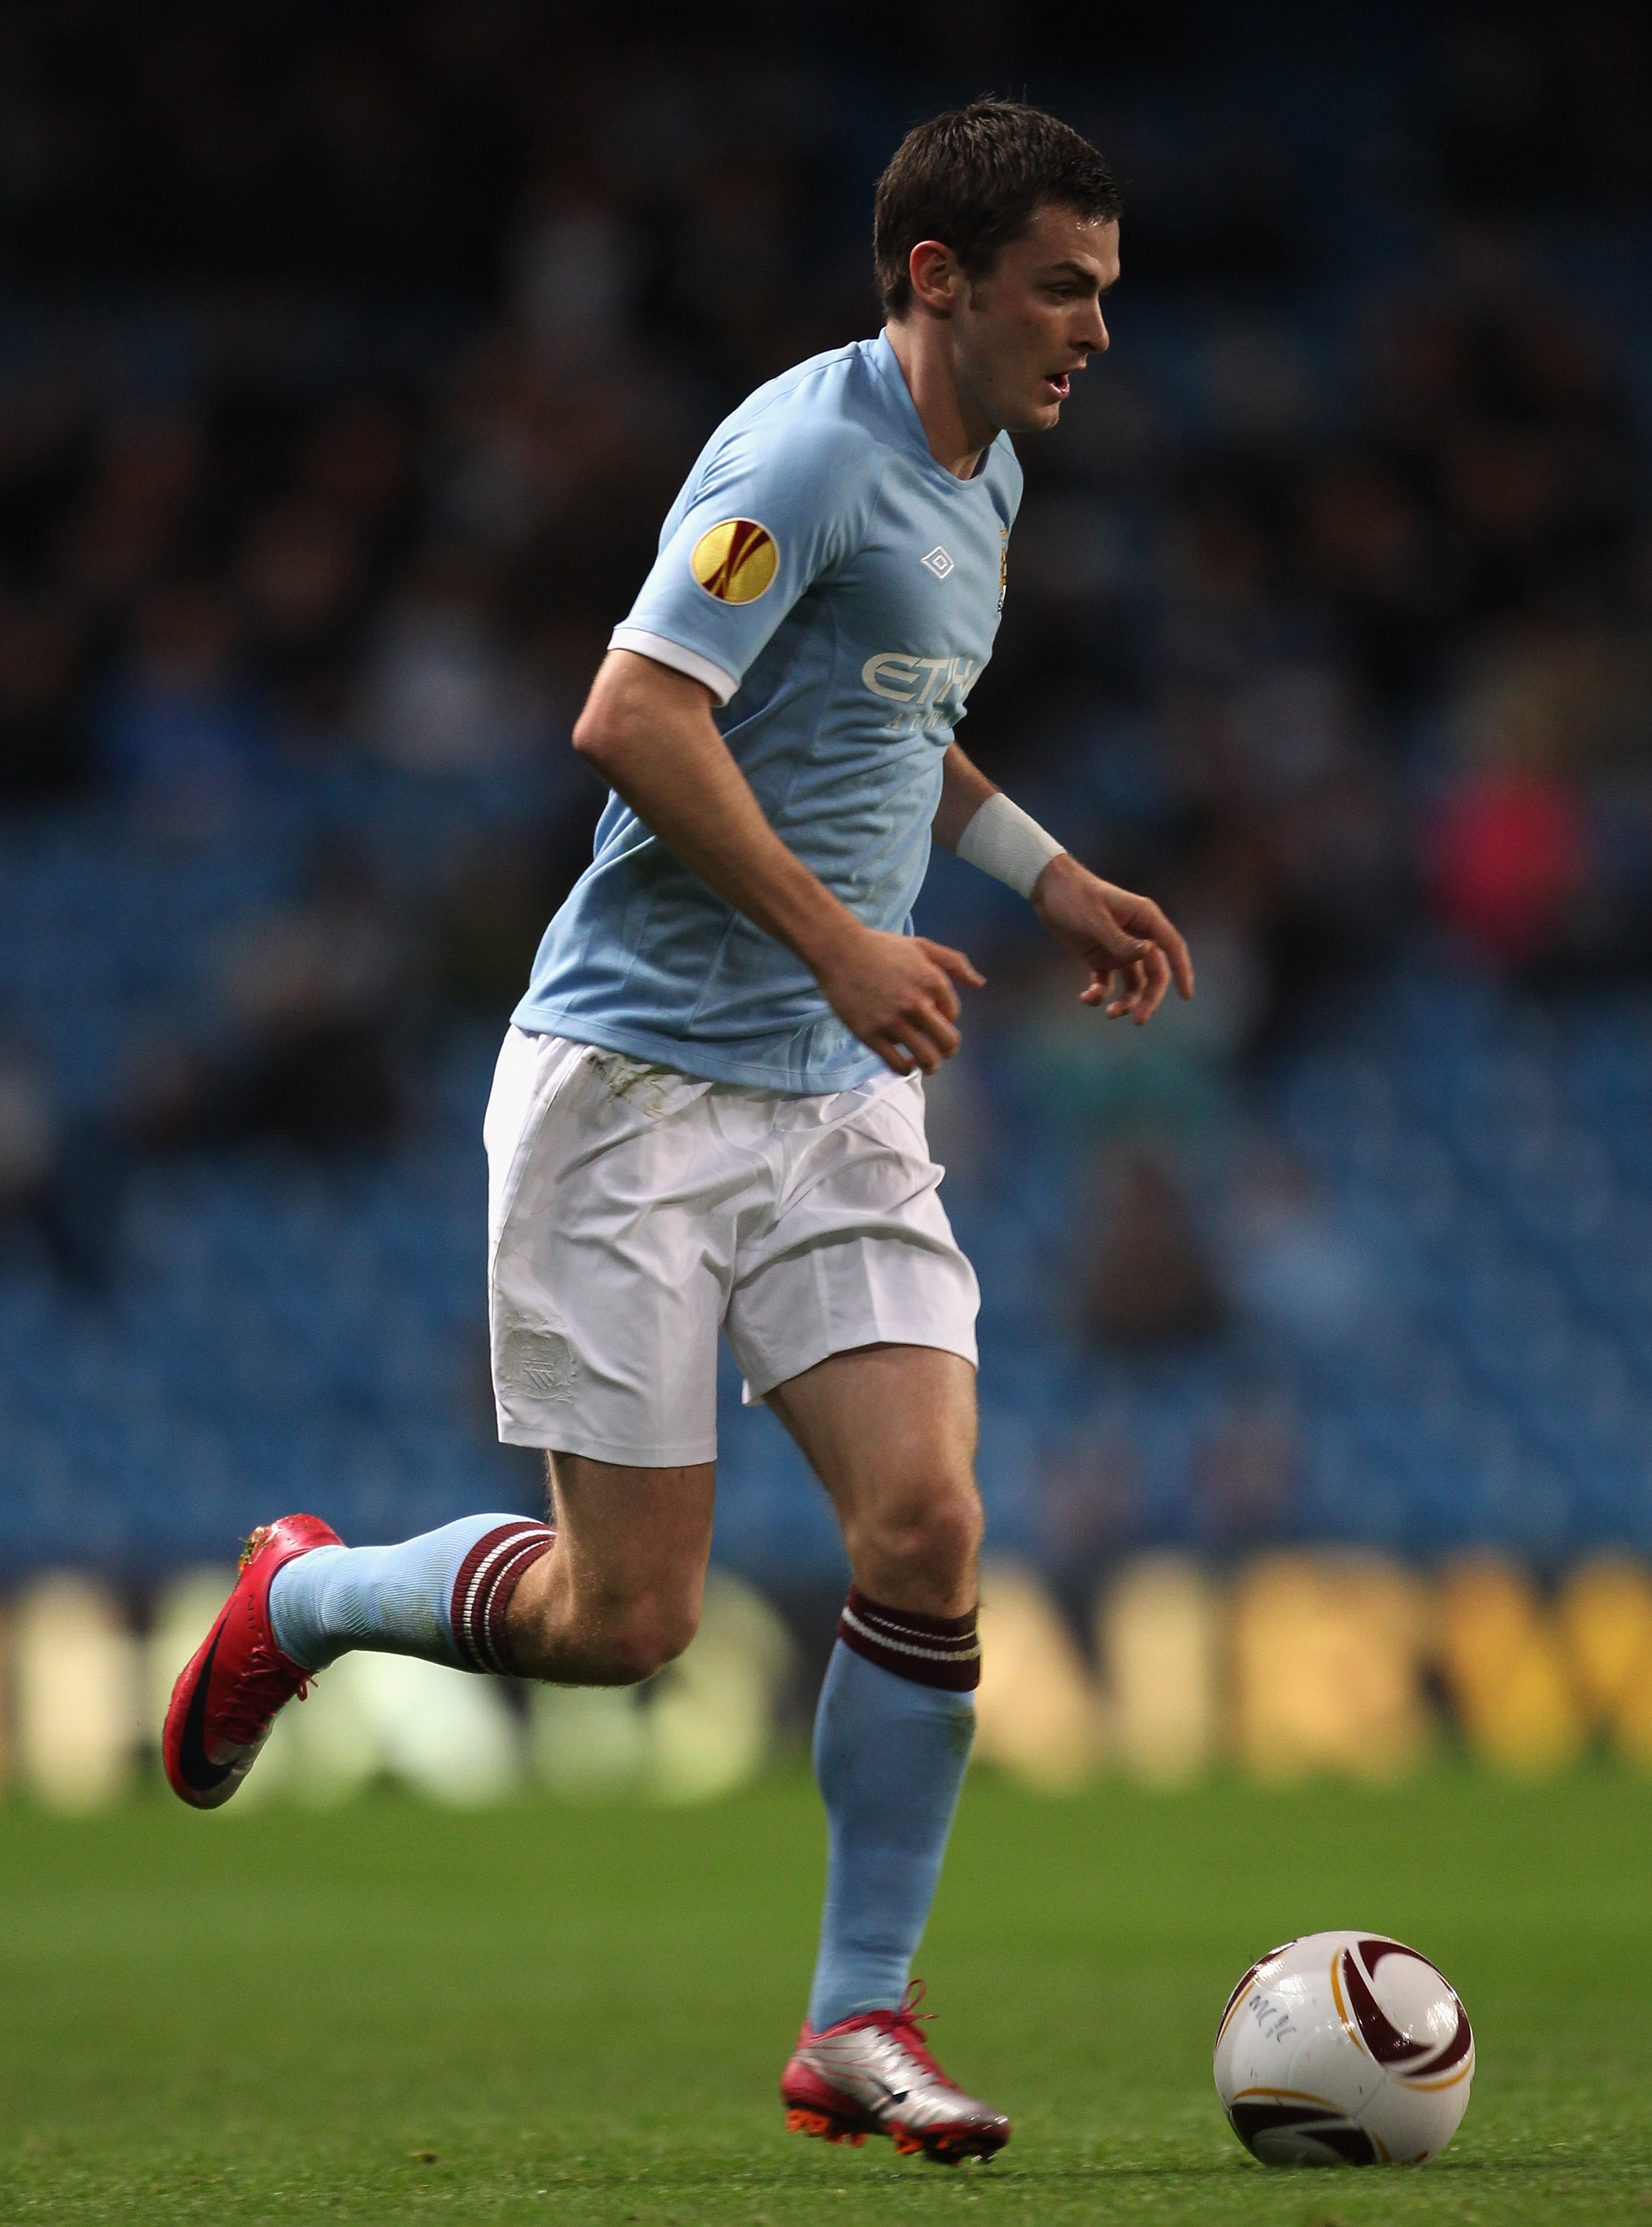 MANCHESTER, ENGLAND - OCTOBER 21:  Adam Johnson of Manchester City runs with the ball during the UEFA Europa League Group A match between Manchester City and KKS Lech Poznan at City of Manchester Stadium on October 21, 2010 in Manchester, England.  (Photo